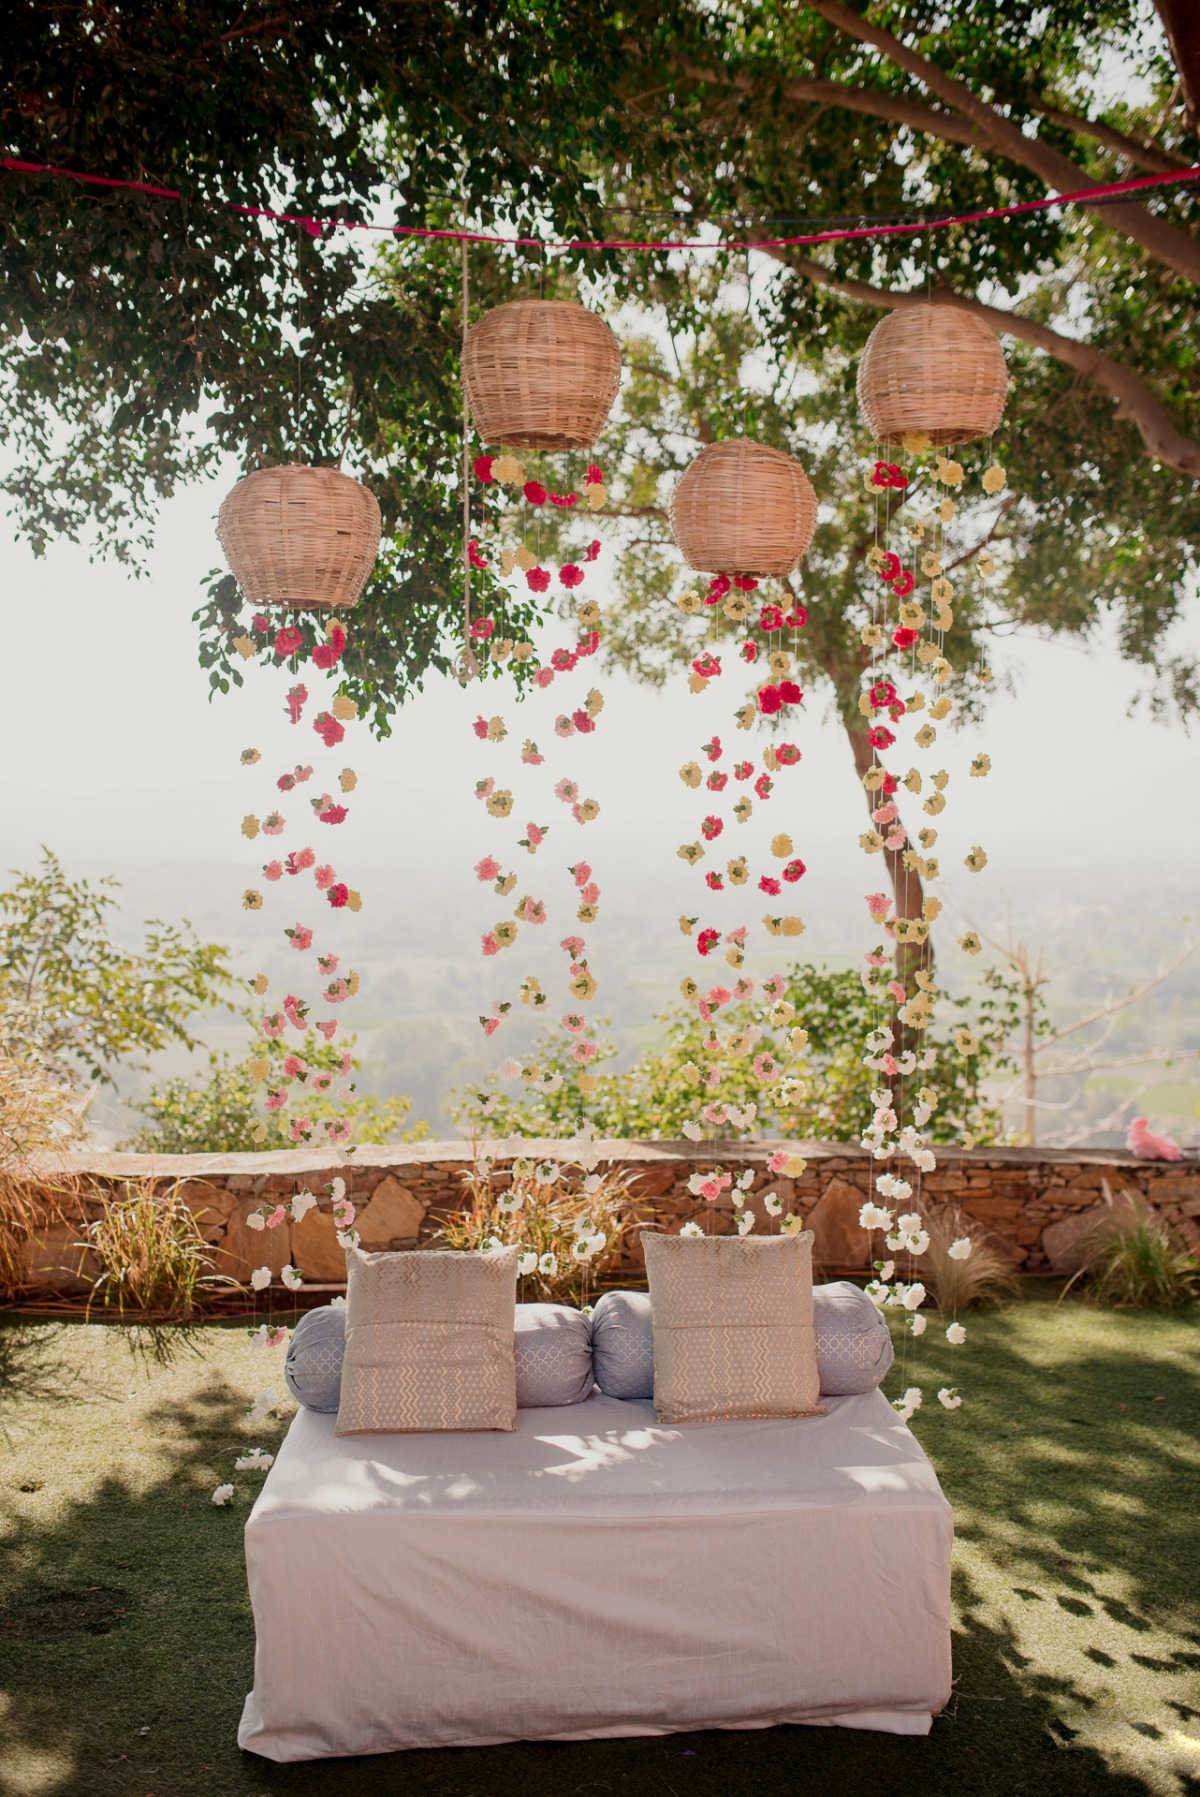 wicker baskets with florals hanging from them